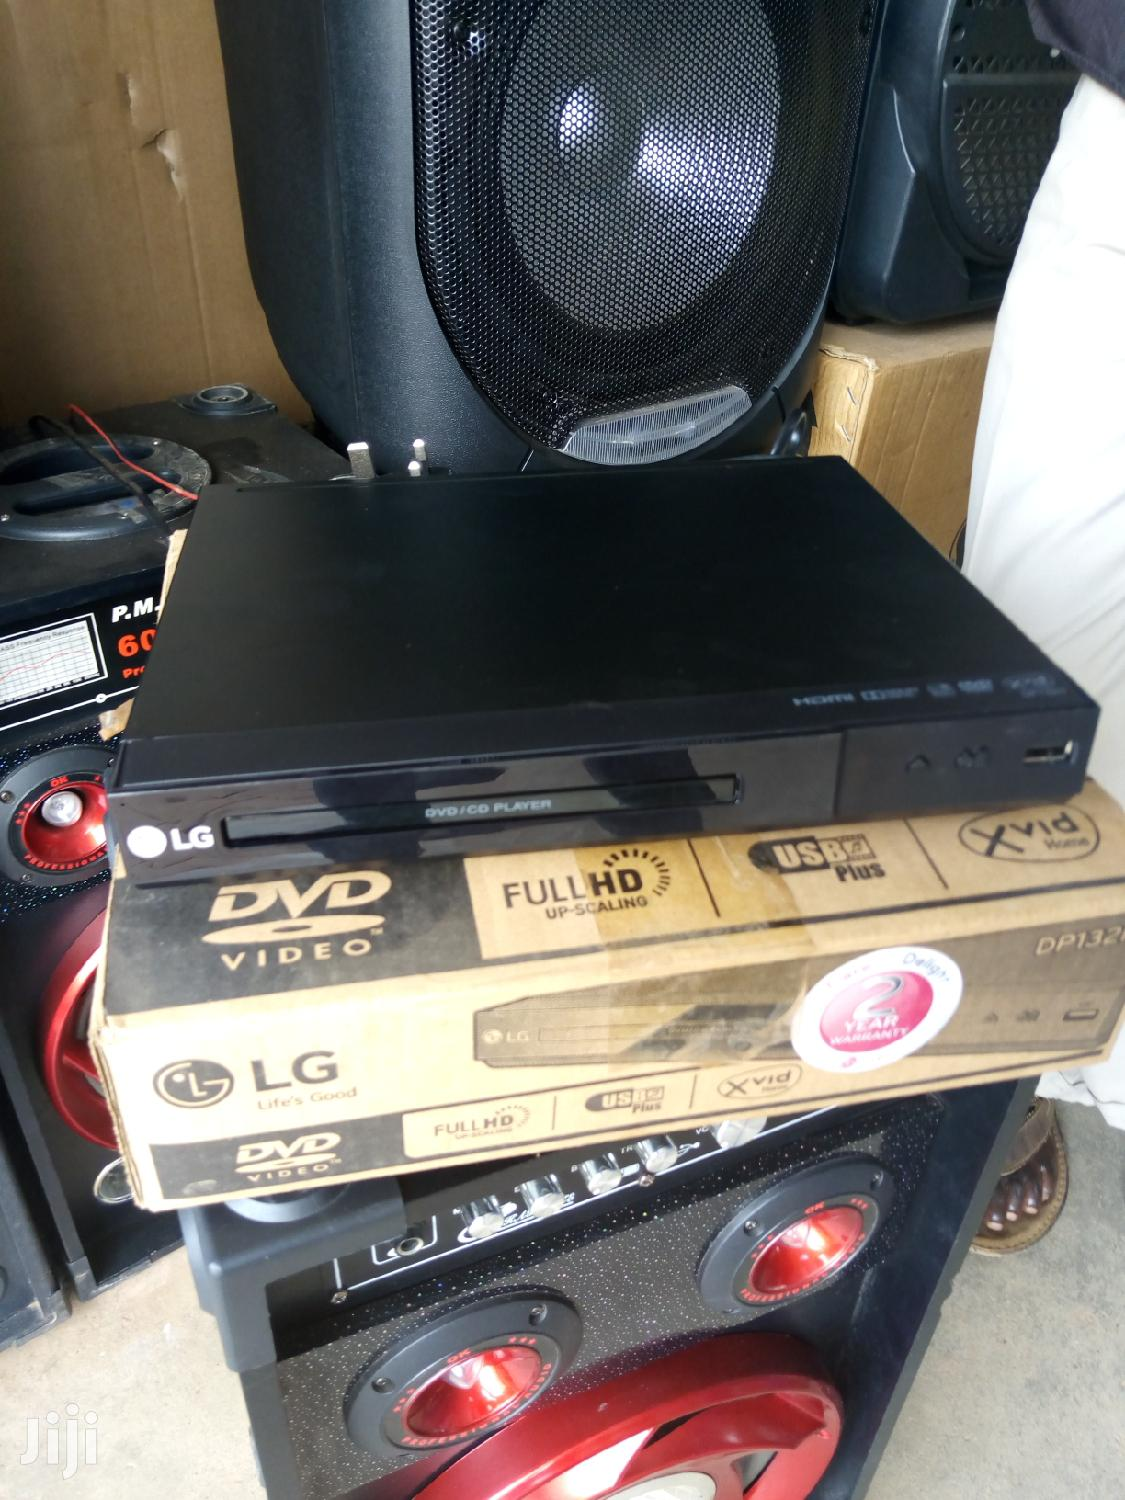 Archive: Original LG DVD Player With Hdmi Port